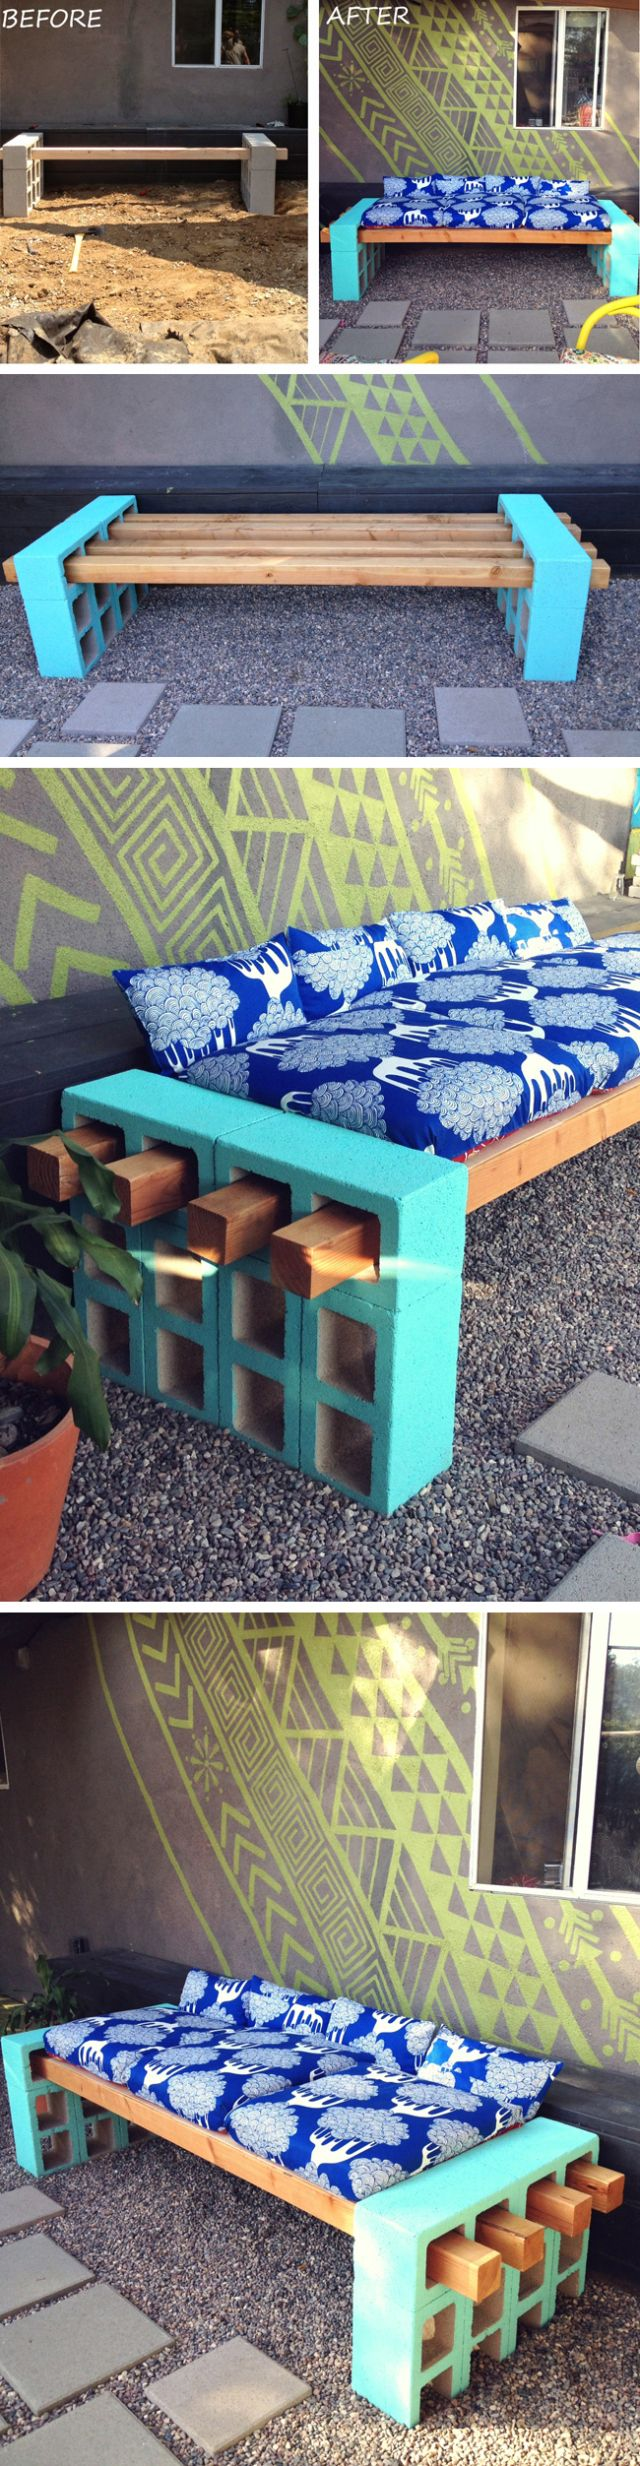 DIY concrete block bench seating | furniture design | awesome DIY inspiration #product_design More